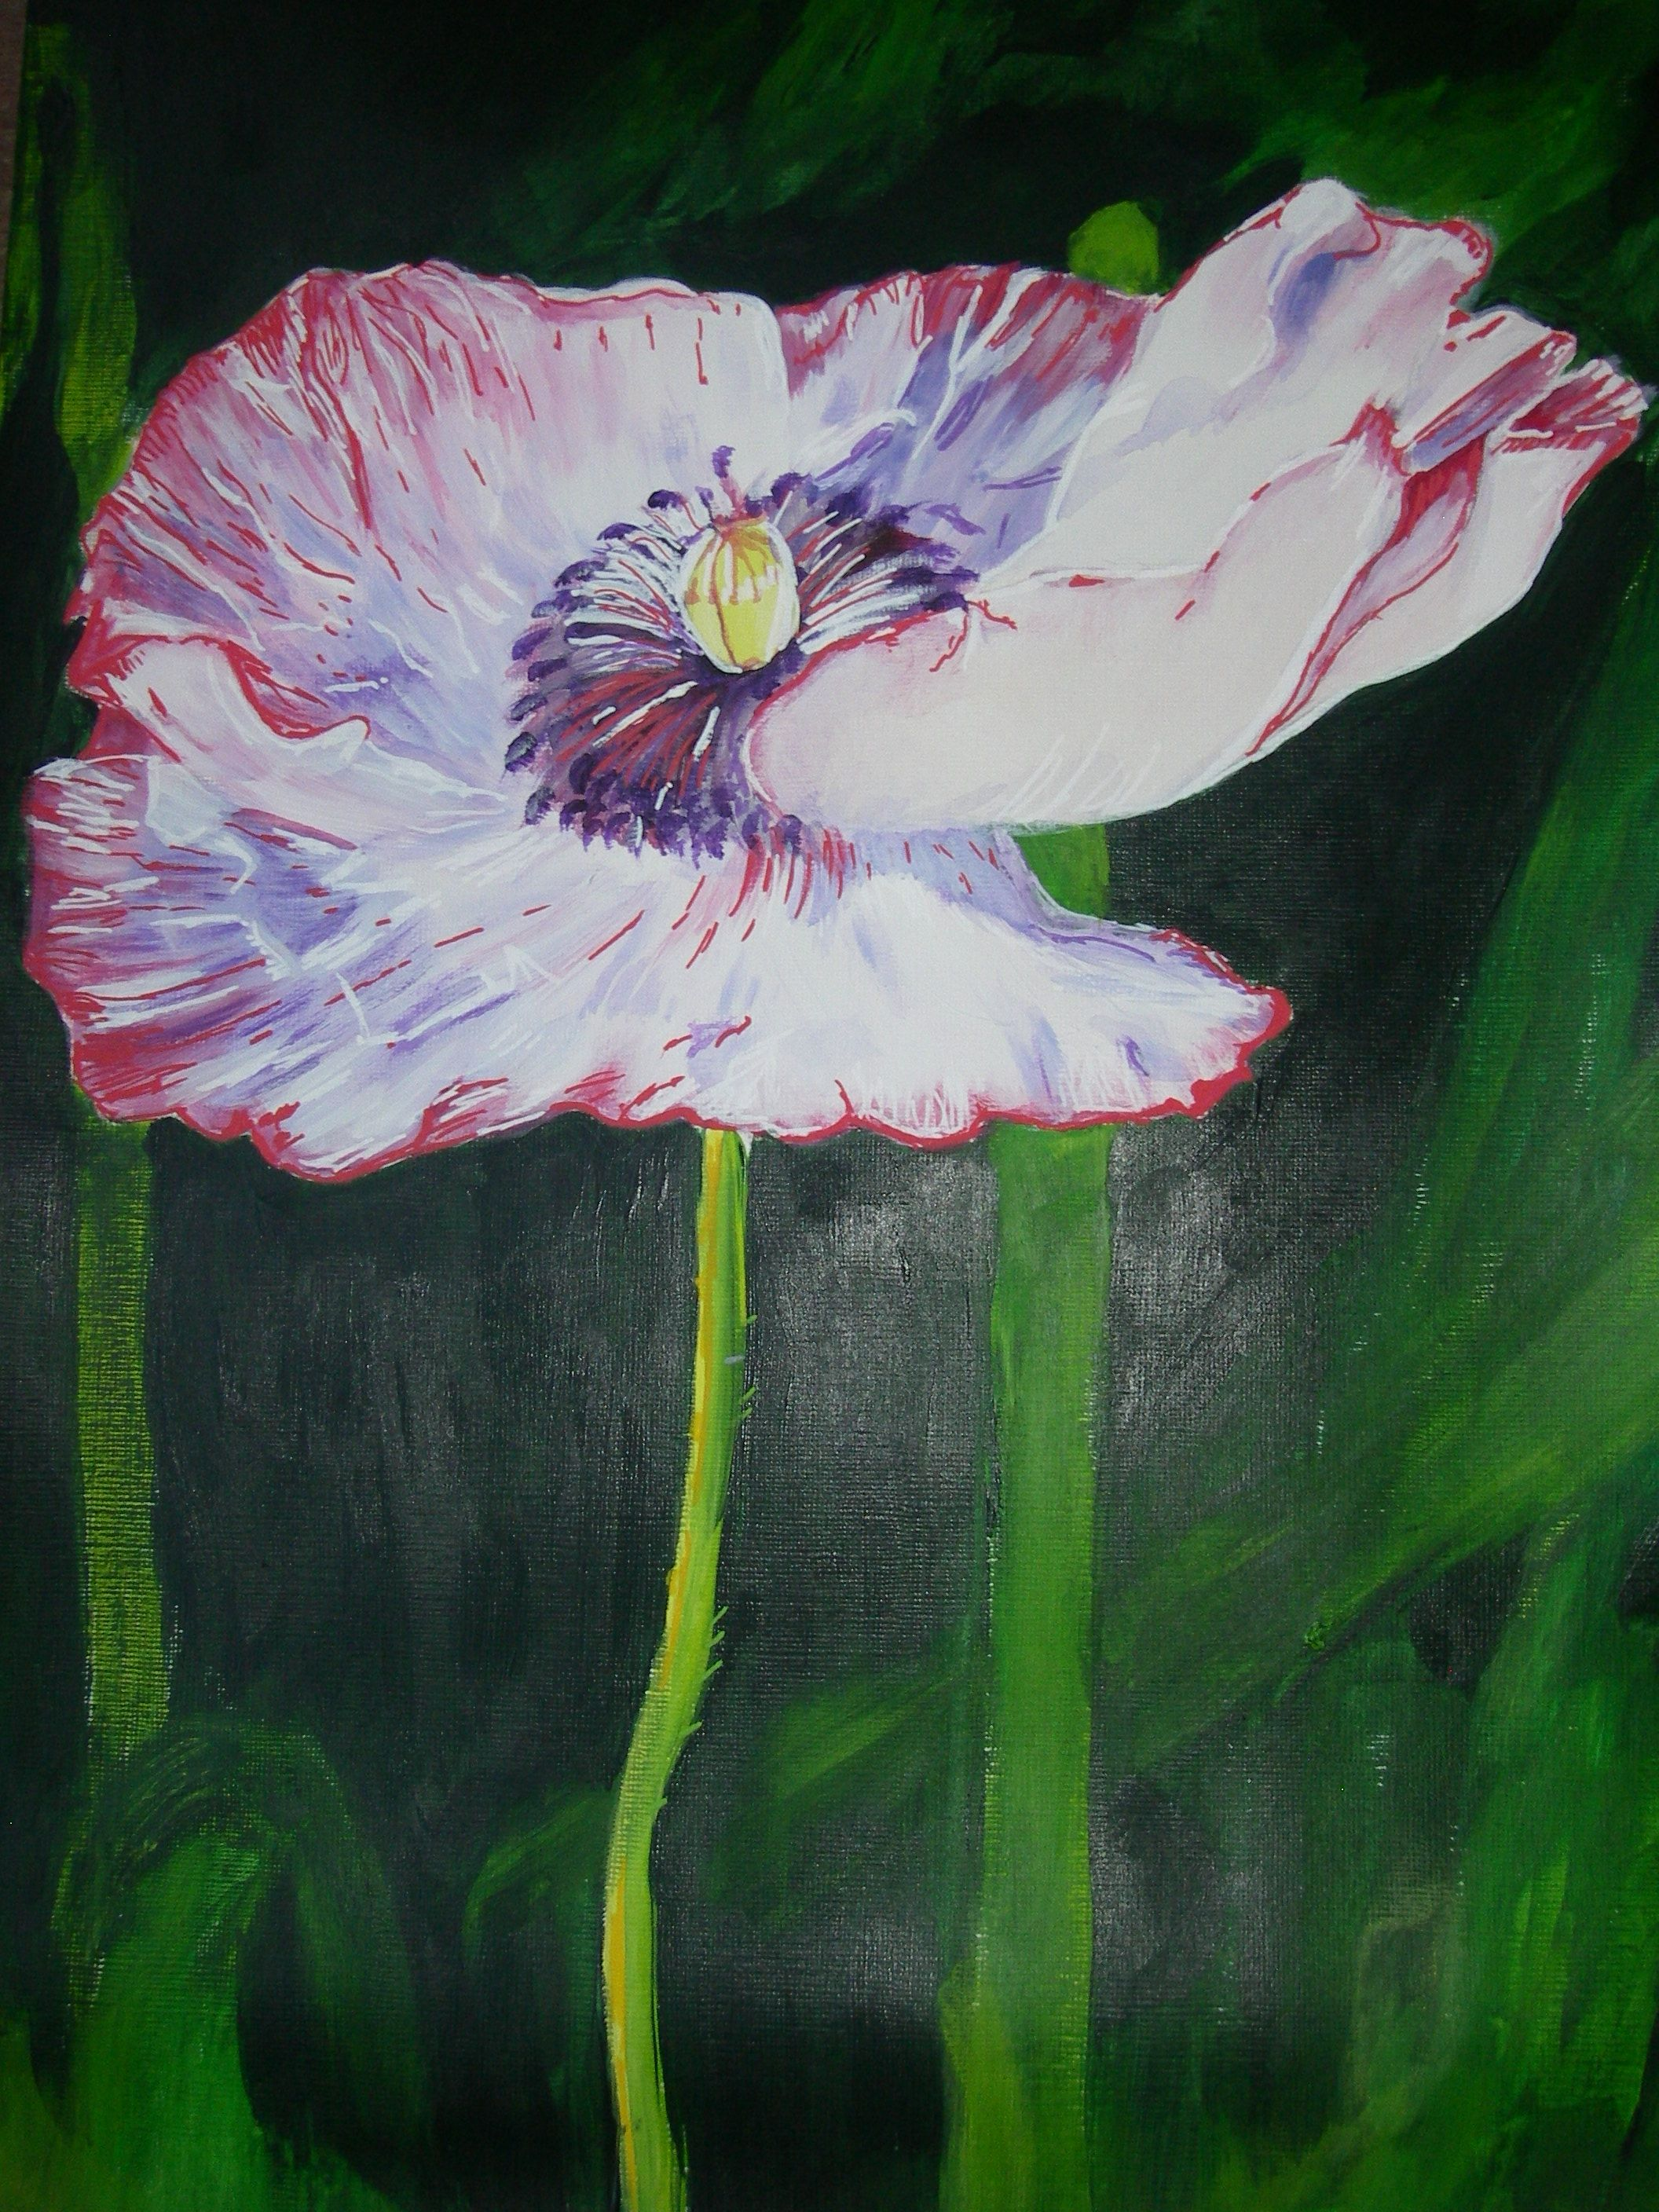 Poppy.  Painted by Geer, the Netherlands